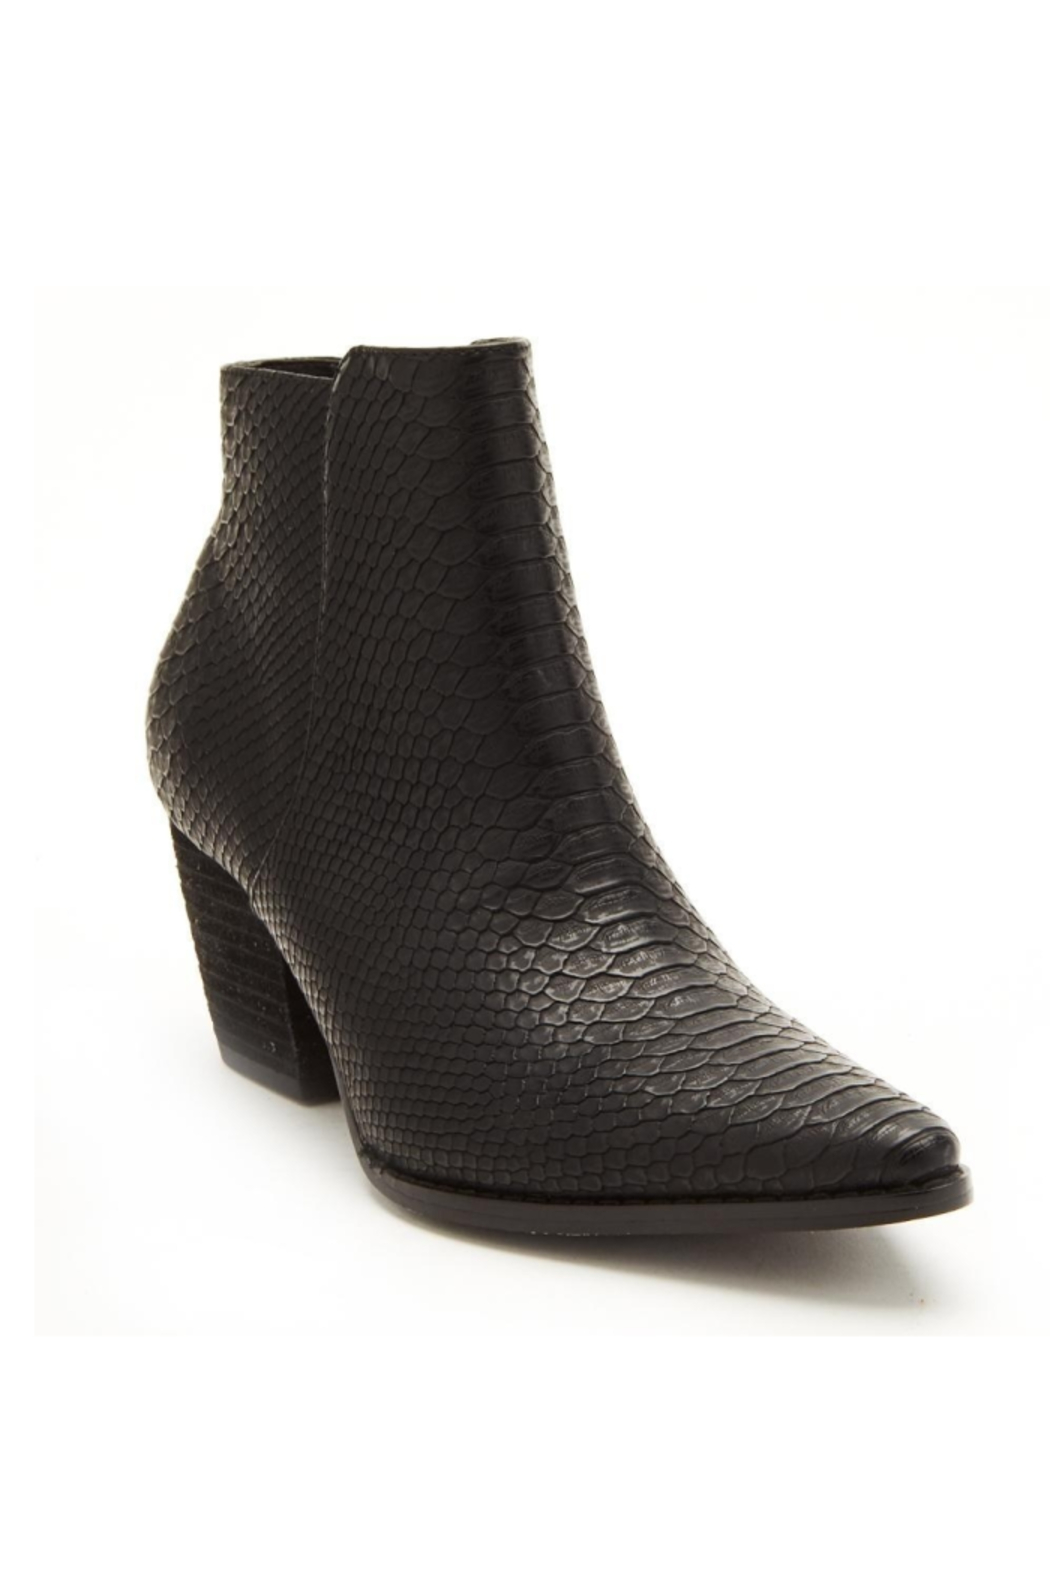 Matisse Go West Croc Pointed Toe Booties - Front Cropped Image